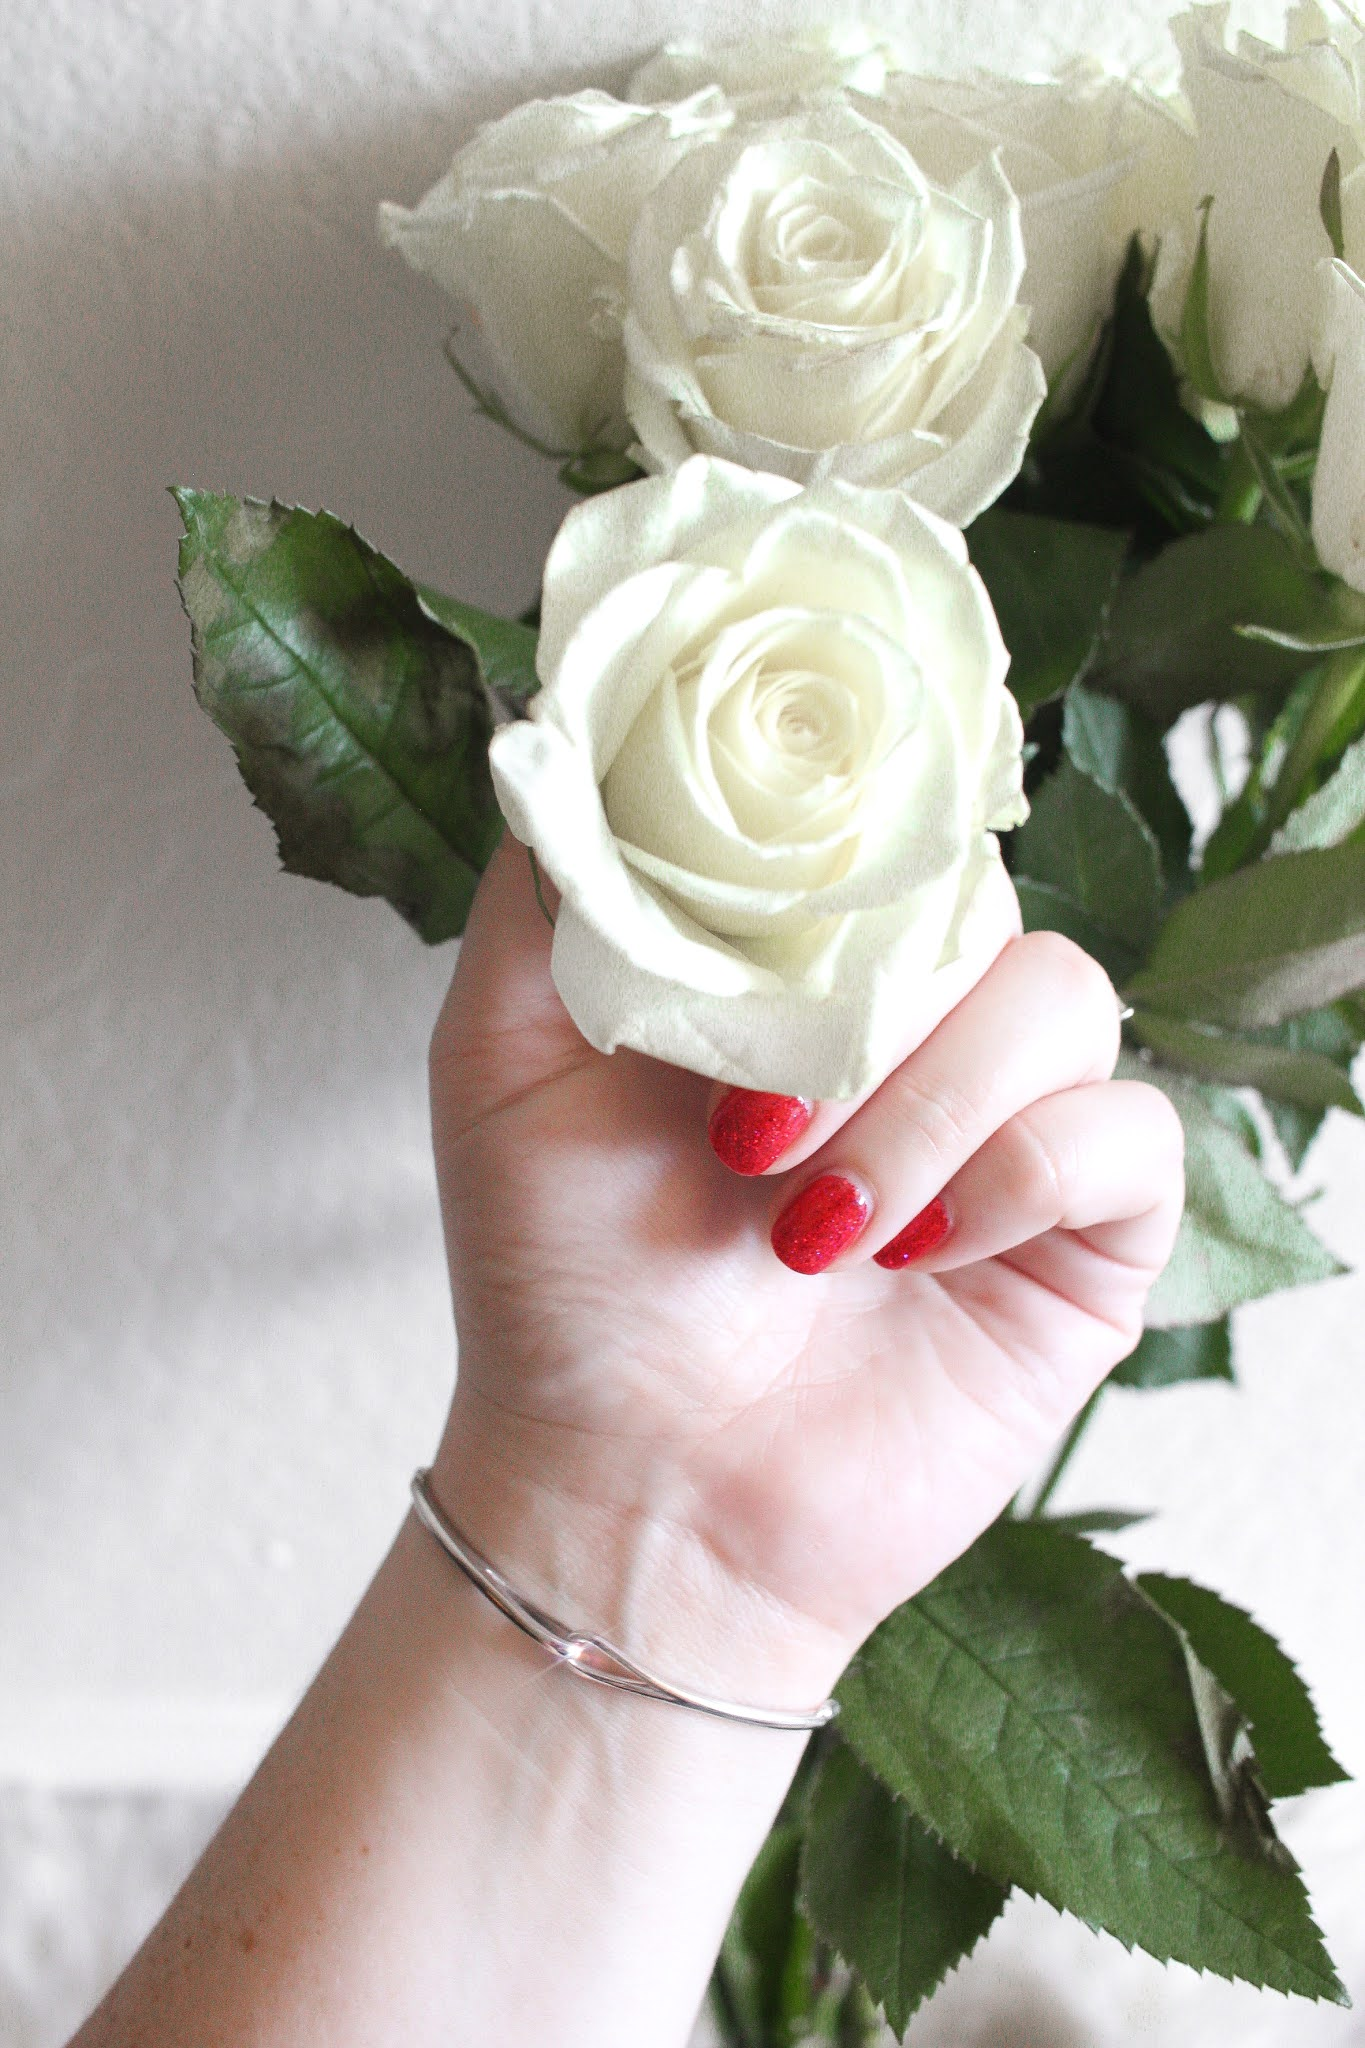 woman's hand with red nail polish holding a white rose and wearing a white gold bracelet